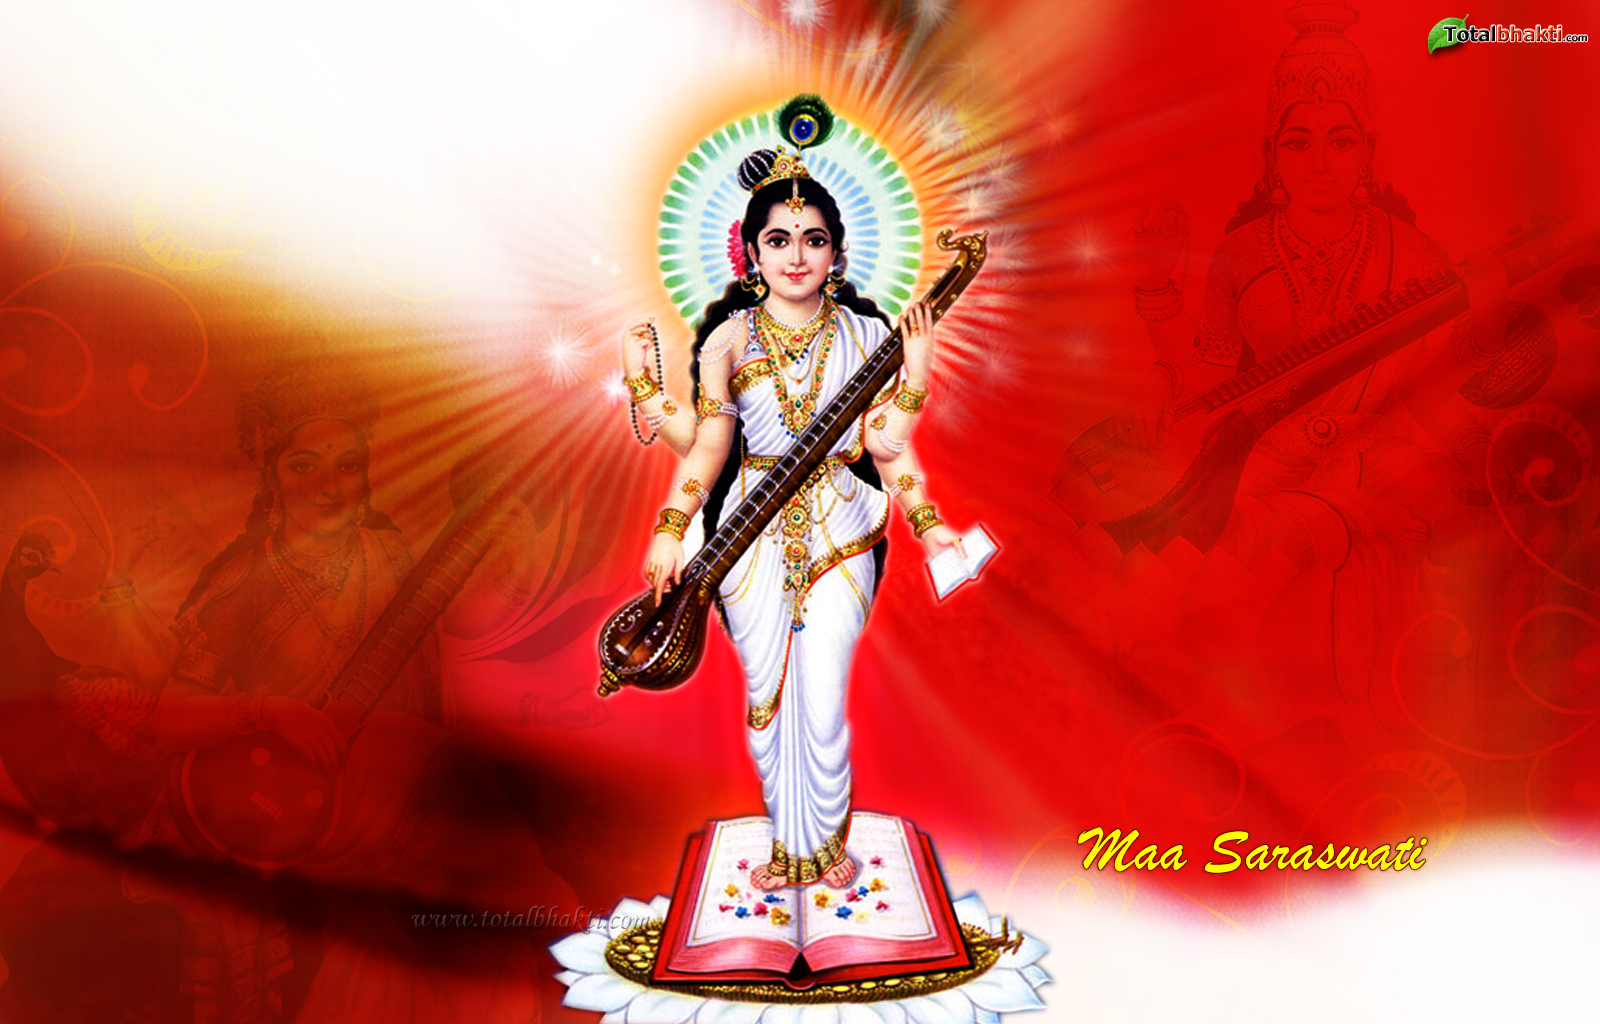 Saraswati Maa Wallpaper Desktop Wallpup.com